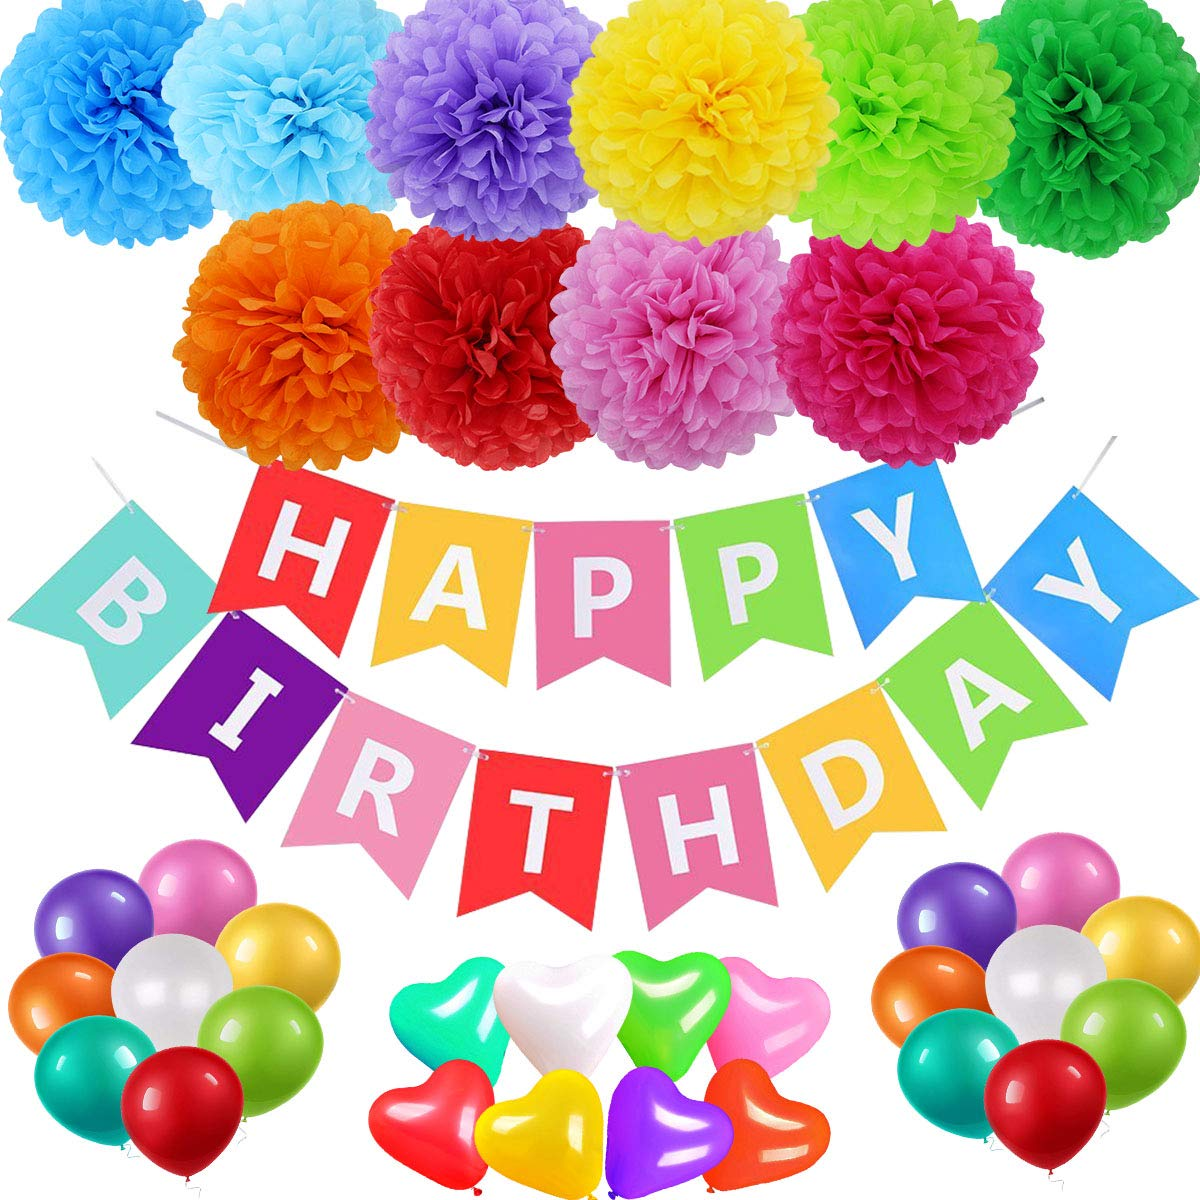 acetek Birthday Decorations Party Supplies Happy Birthday Banner Sign 24pcs Colorful Balloons,10pcs Rainbow Tissue Paper Pompom Balls for 1st Birthday Party Baby Shower